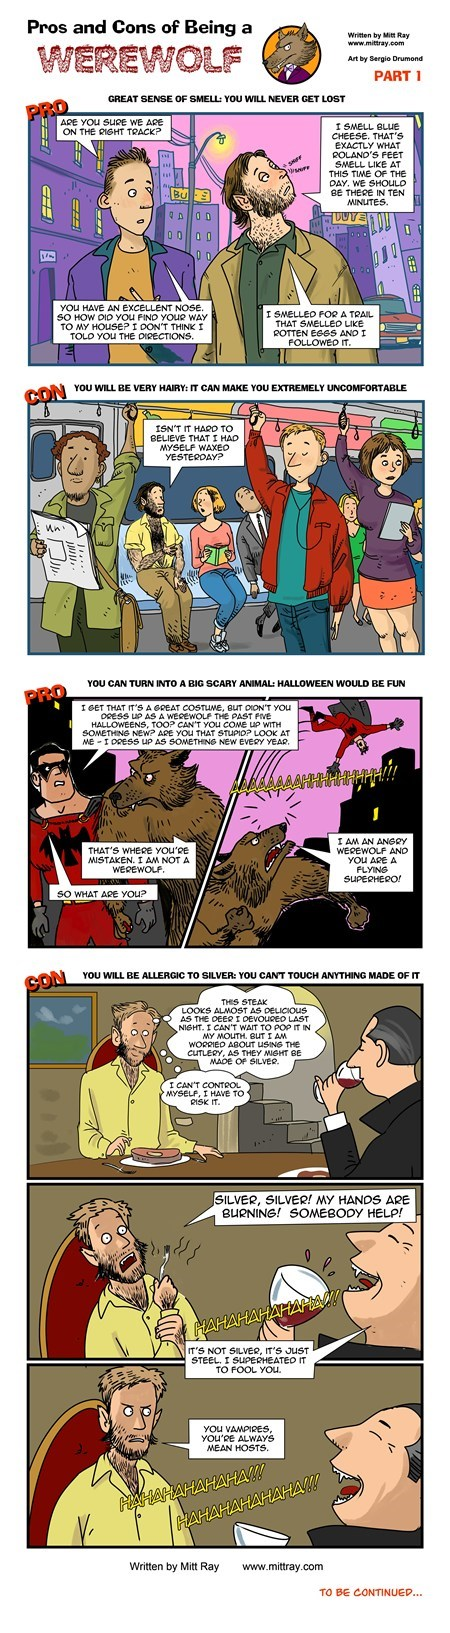 halloween werewolves web comics - 7844541440